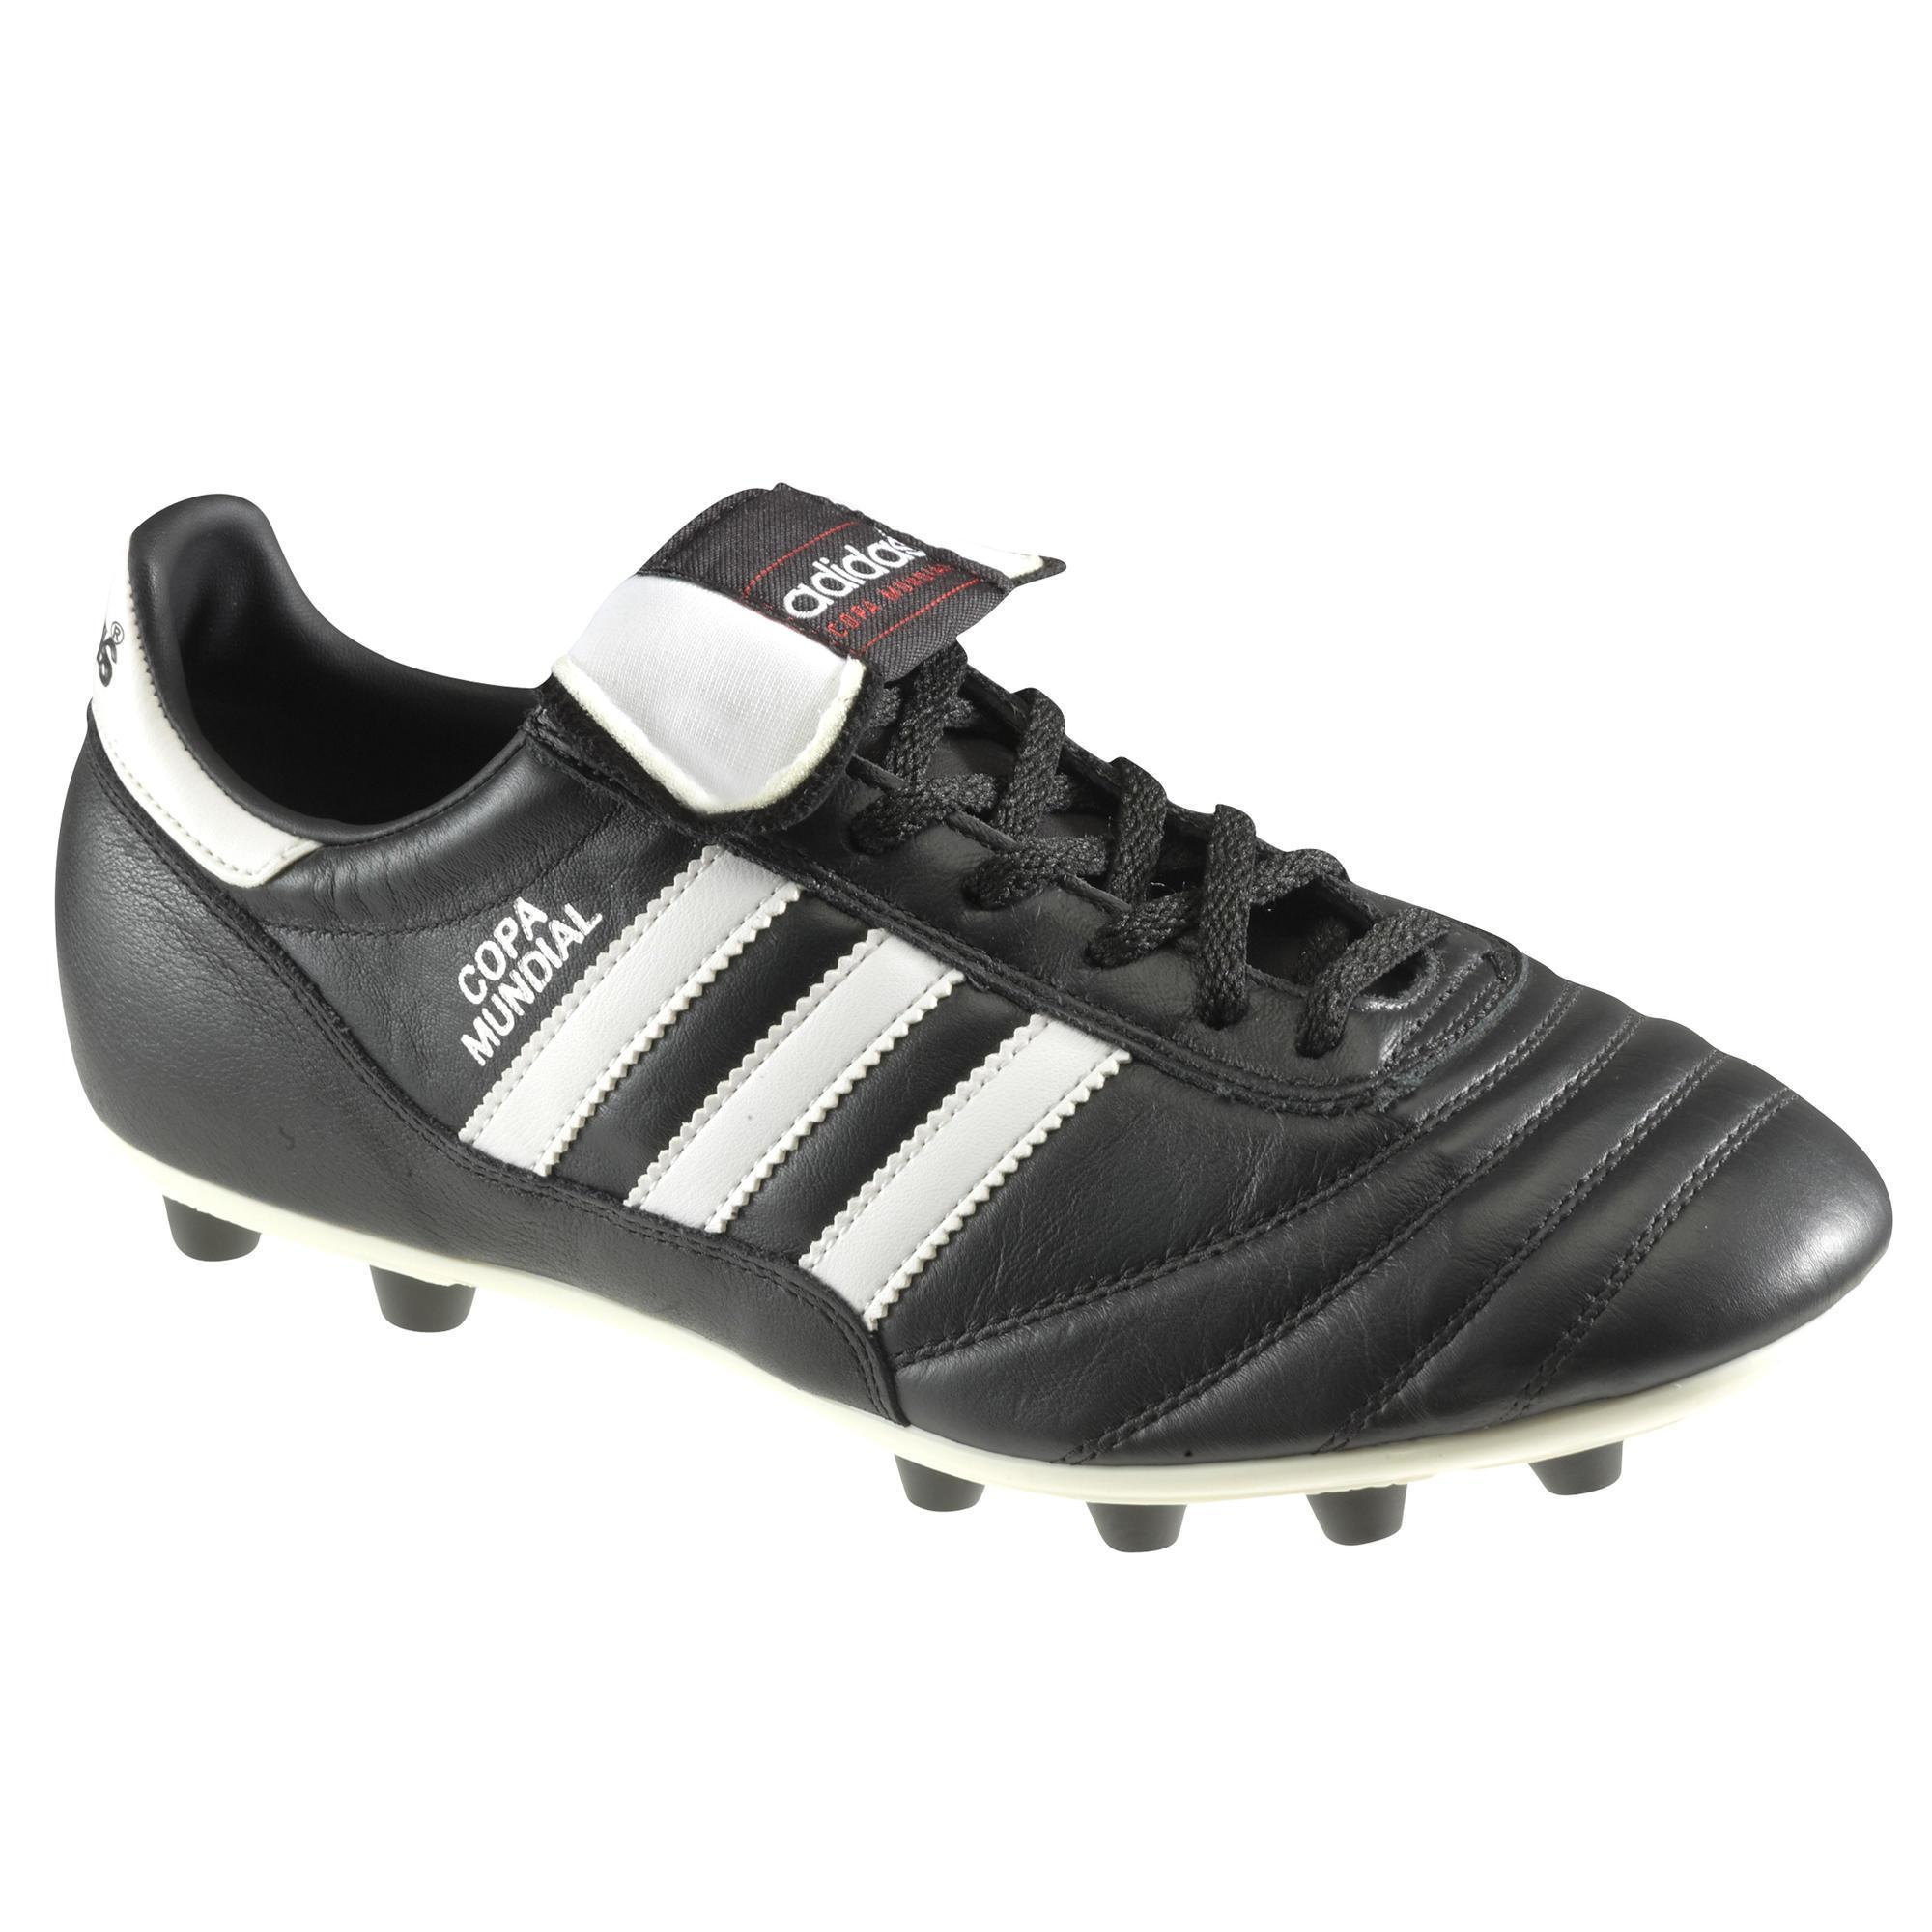 Adult Firm Ground Football Boots Copa